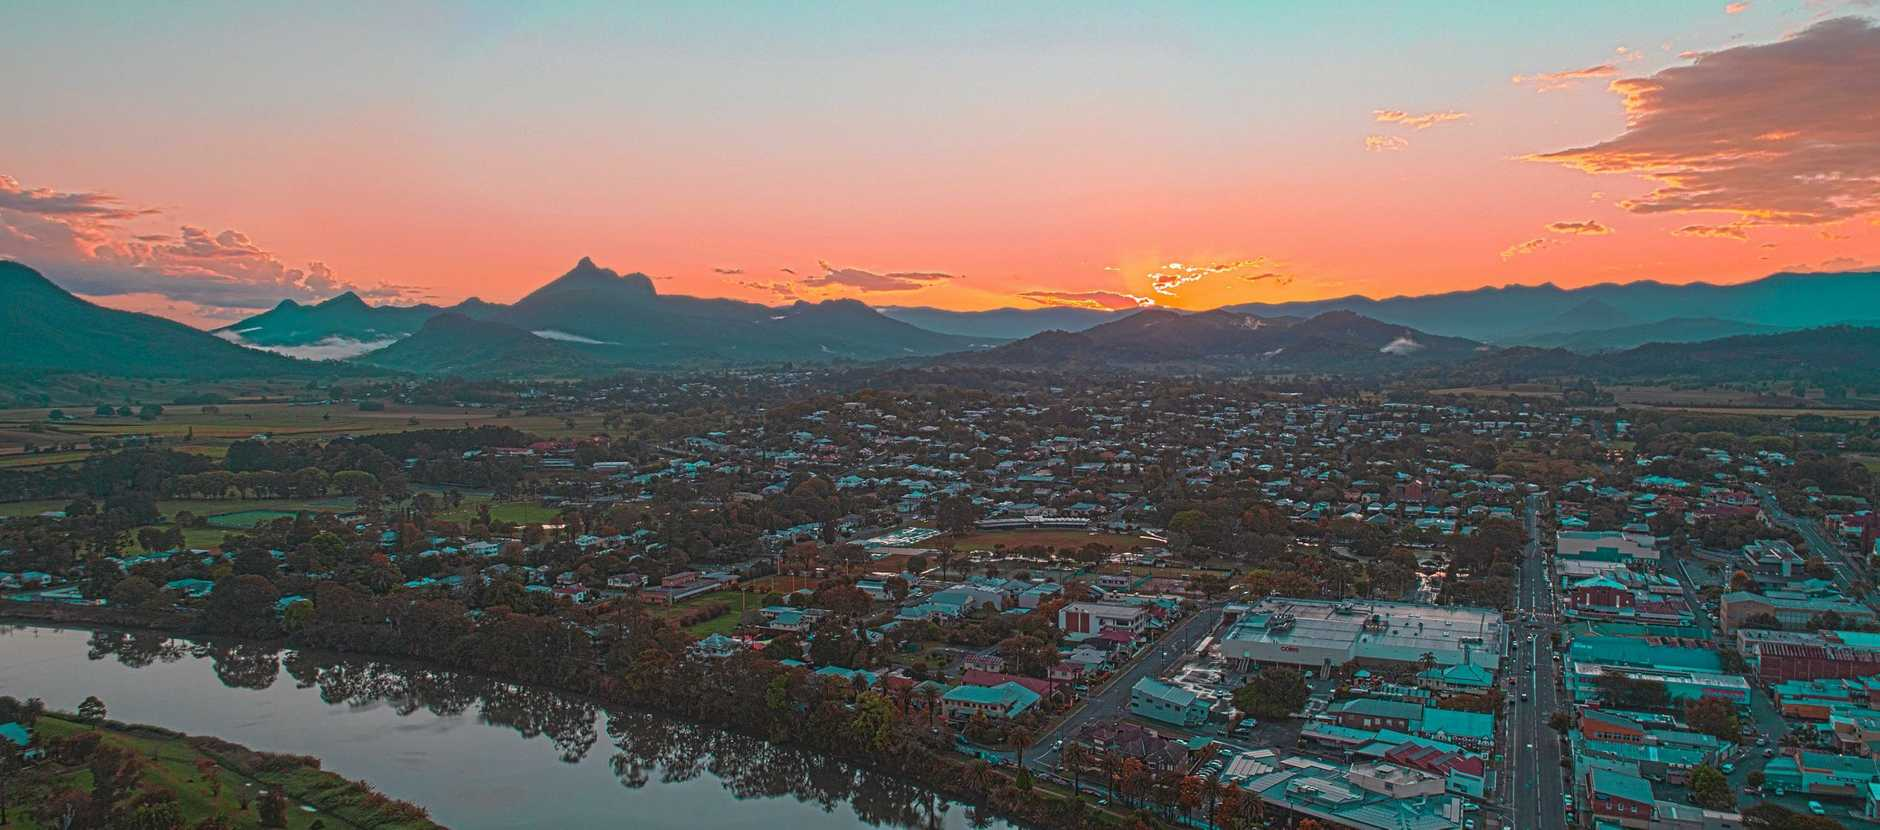 An aerial view of Murwillumbah.